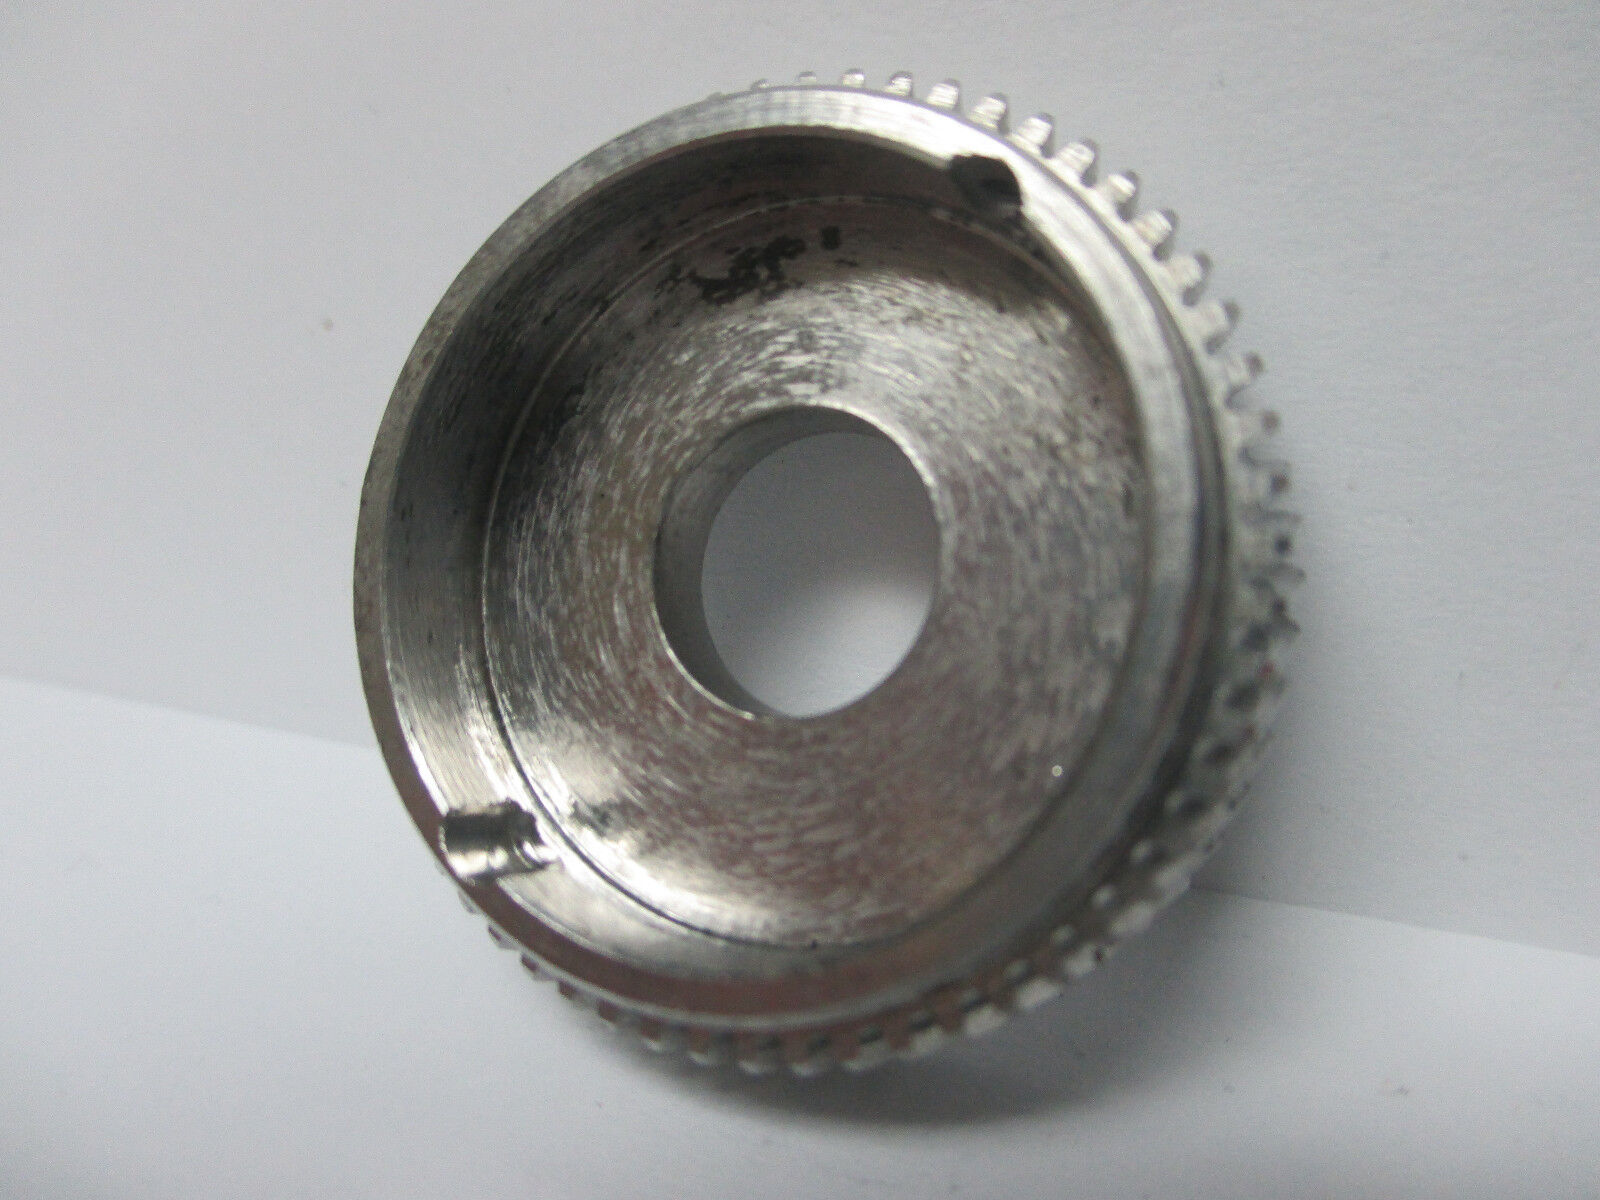 NEW NEWELL CONVENTIONAL REEL PART - G 338 F - Main Gear